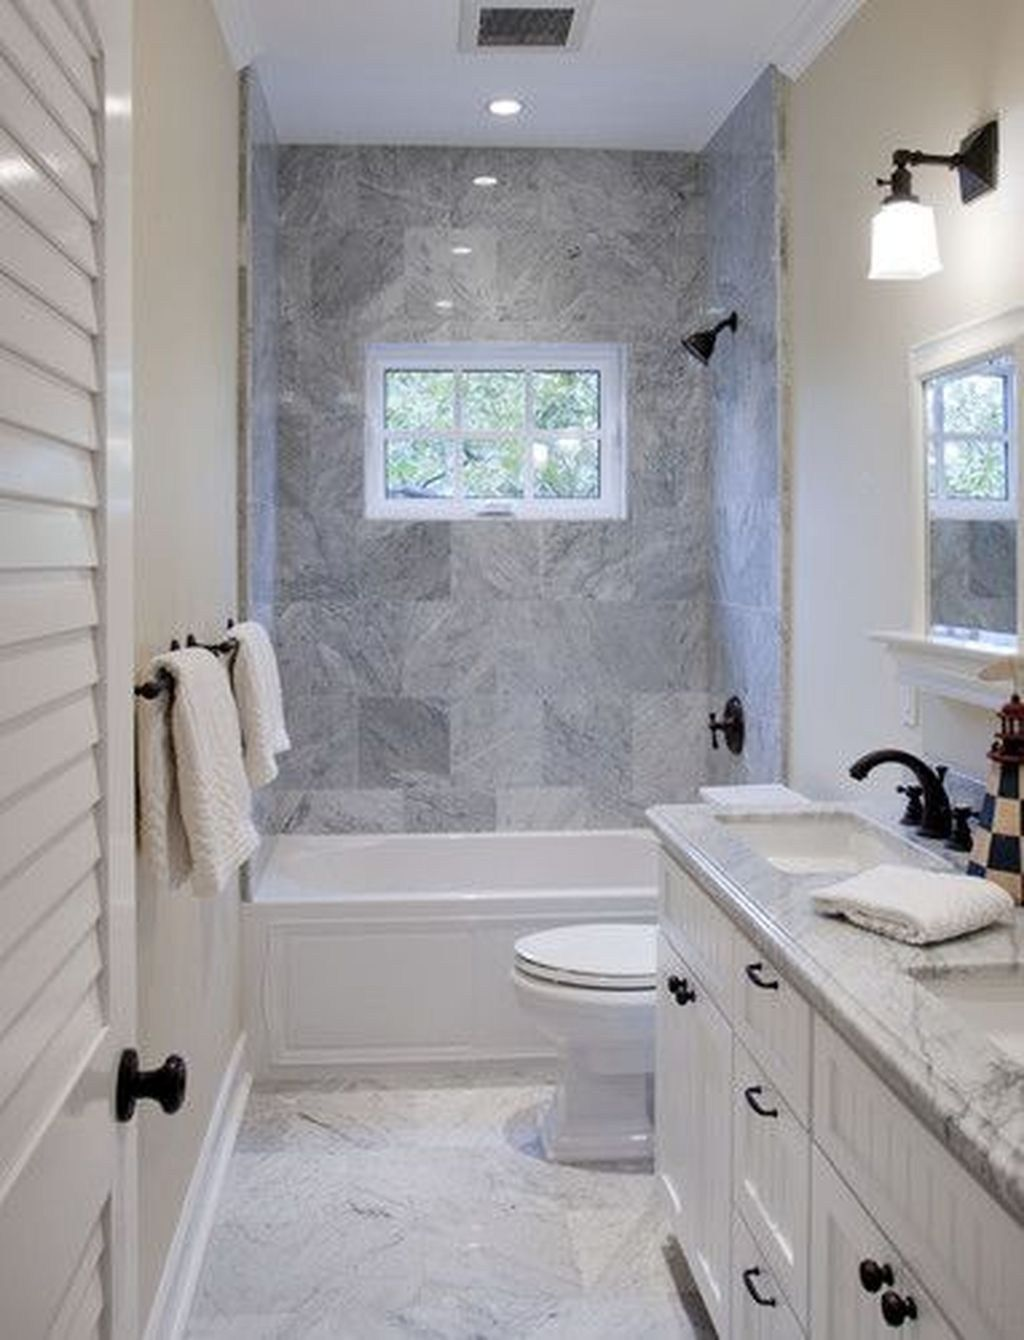 Best Small Master Bathroom Remodel Ideas 42 Bathroom Design Inspiration Bathroom Remodel Designs Bathroom Design Small